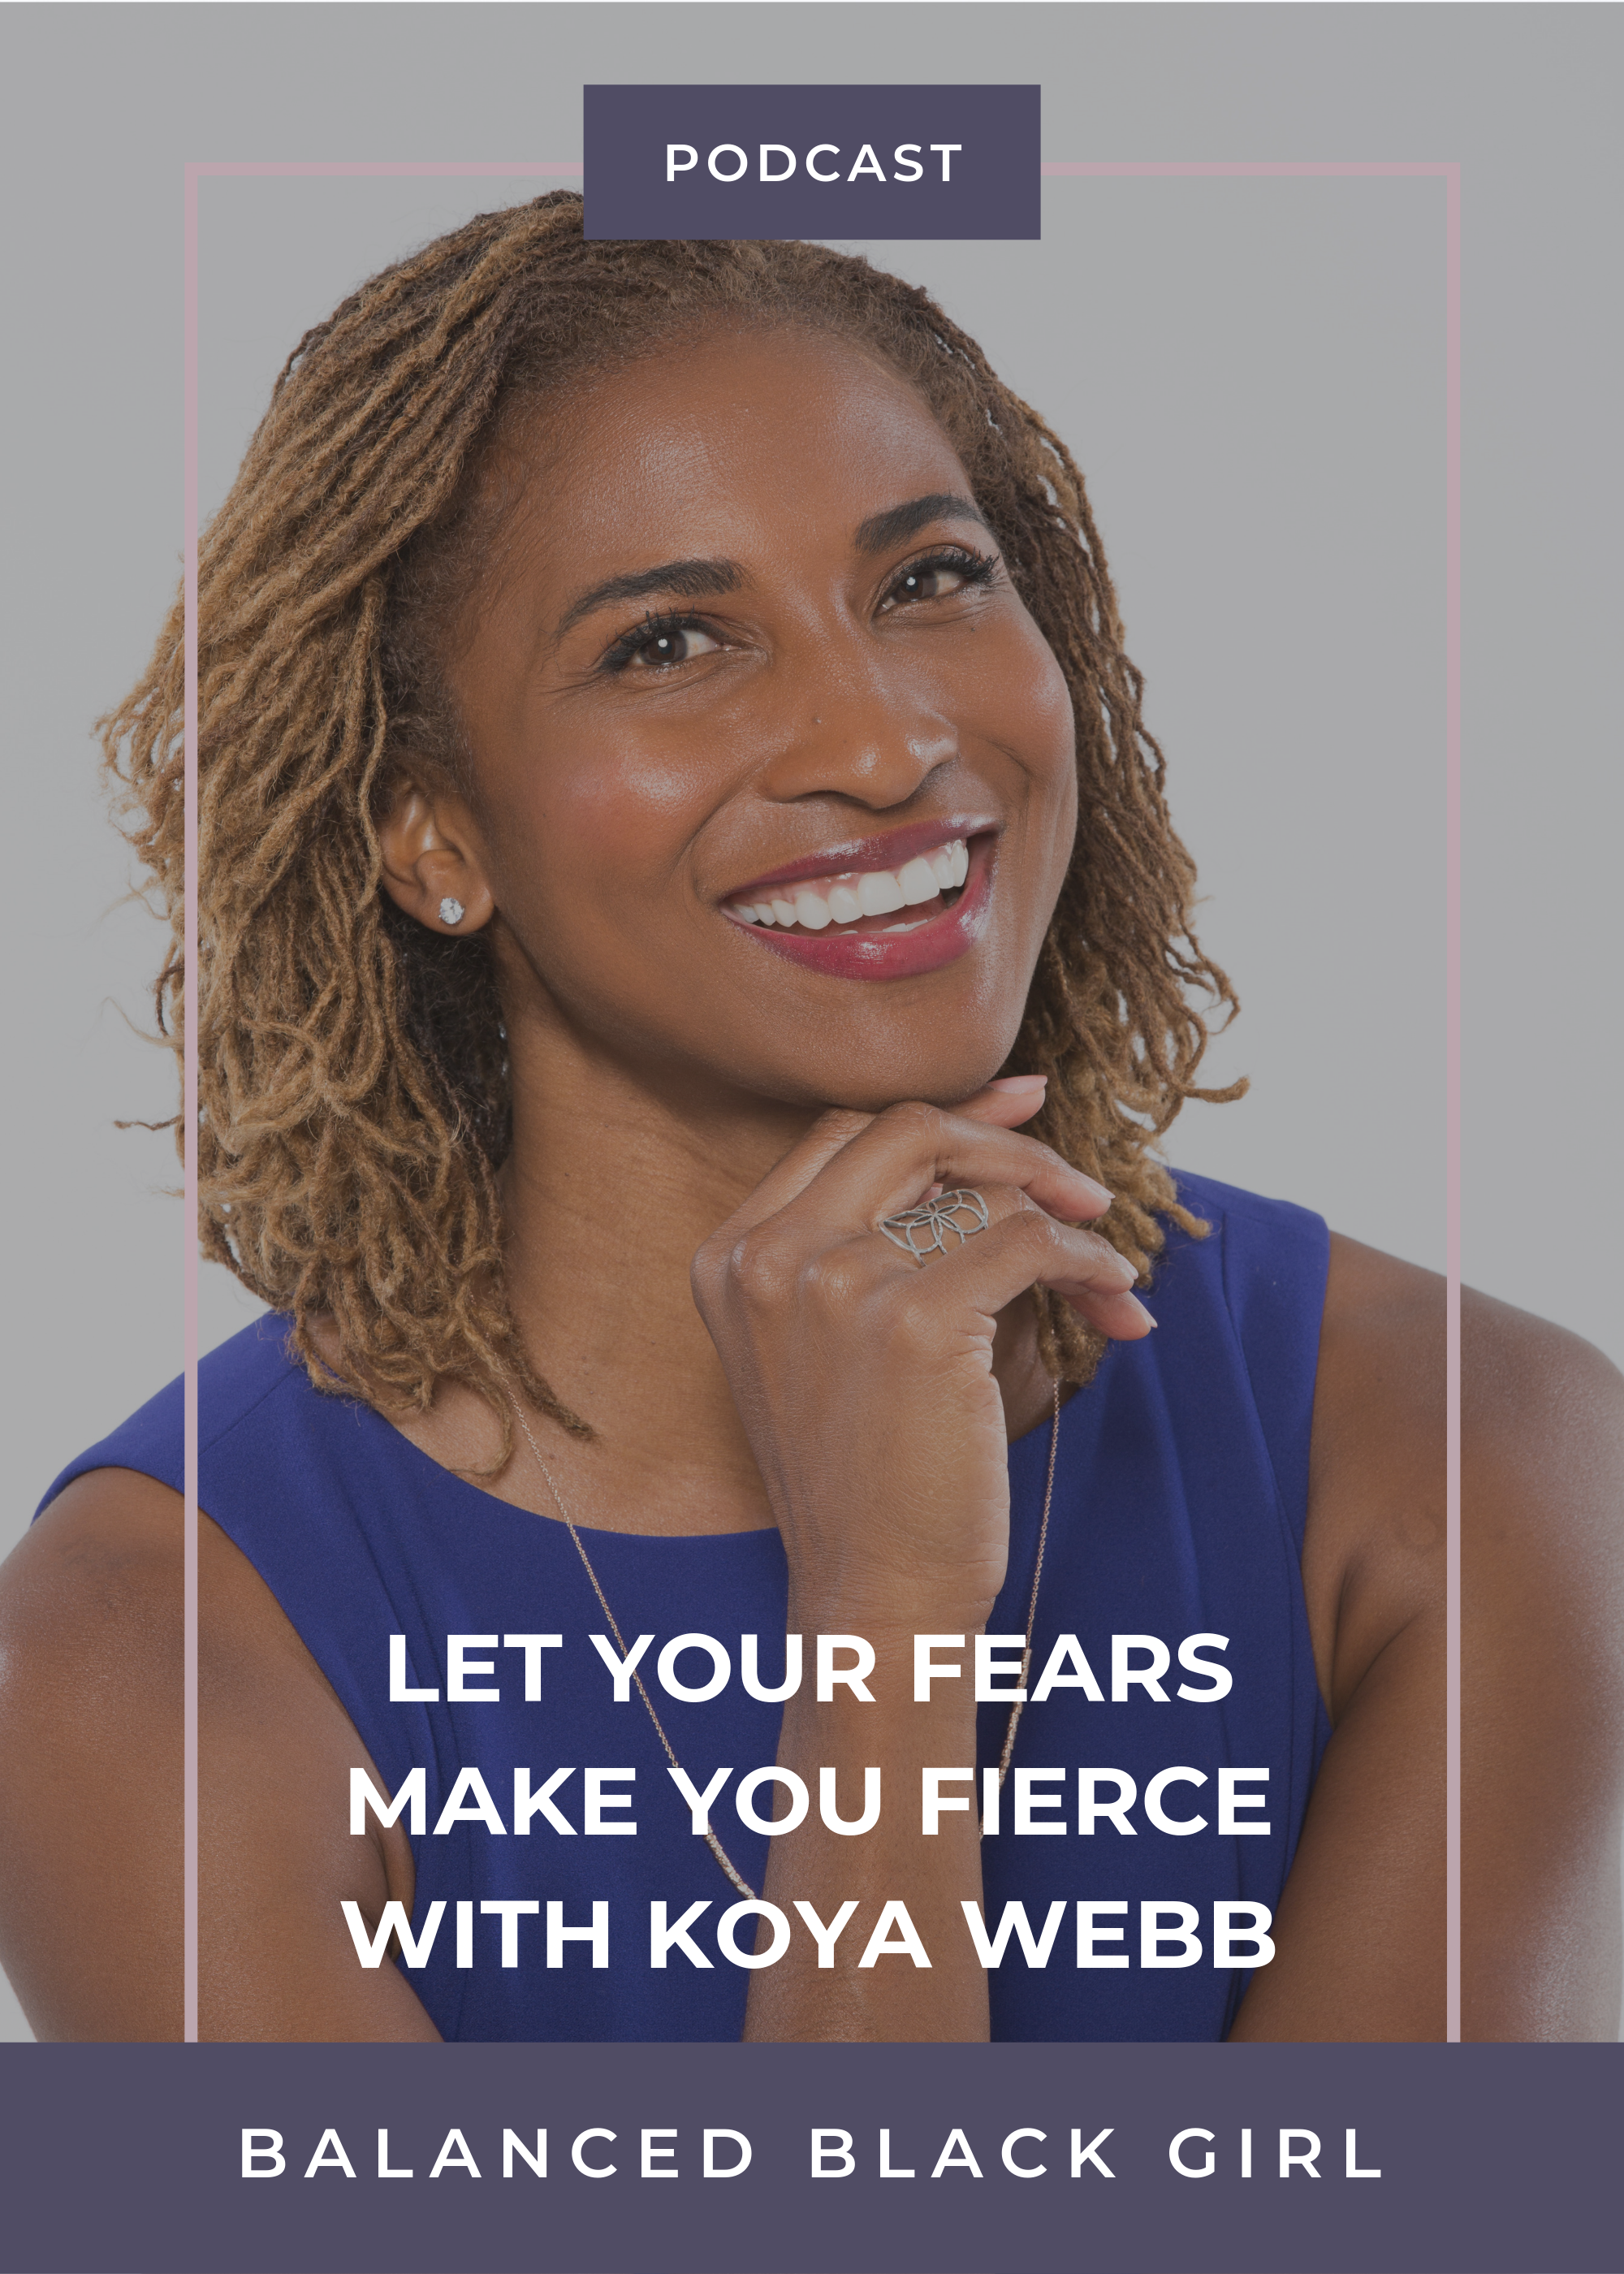 Let Your Fears Make You Fierce with Koya Webb | Balanced Black Girl Podcast